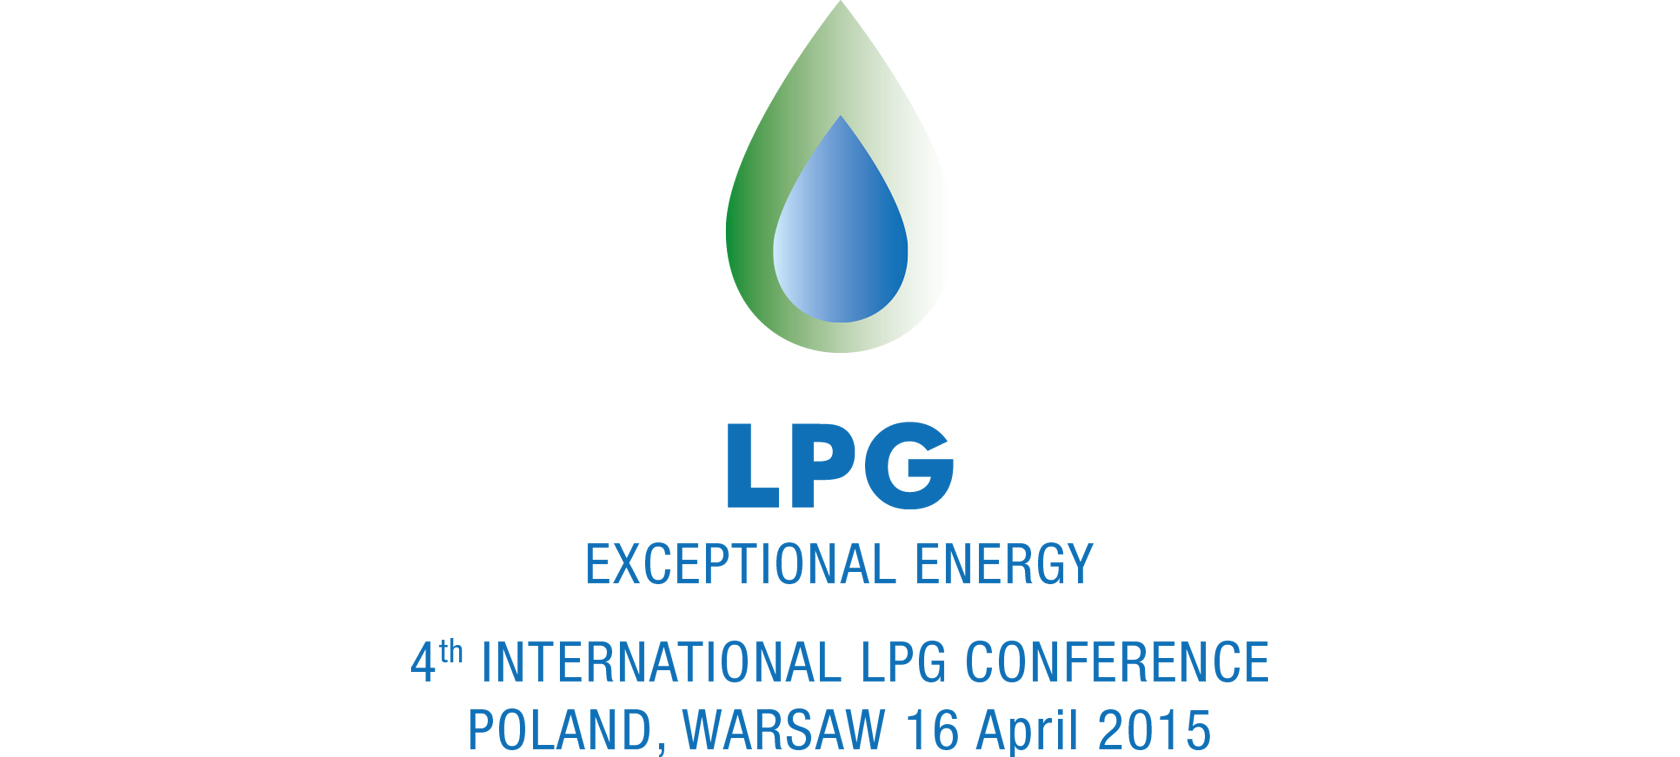 LPG - Exceptional Energy: fourth time running